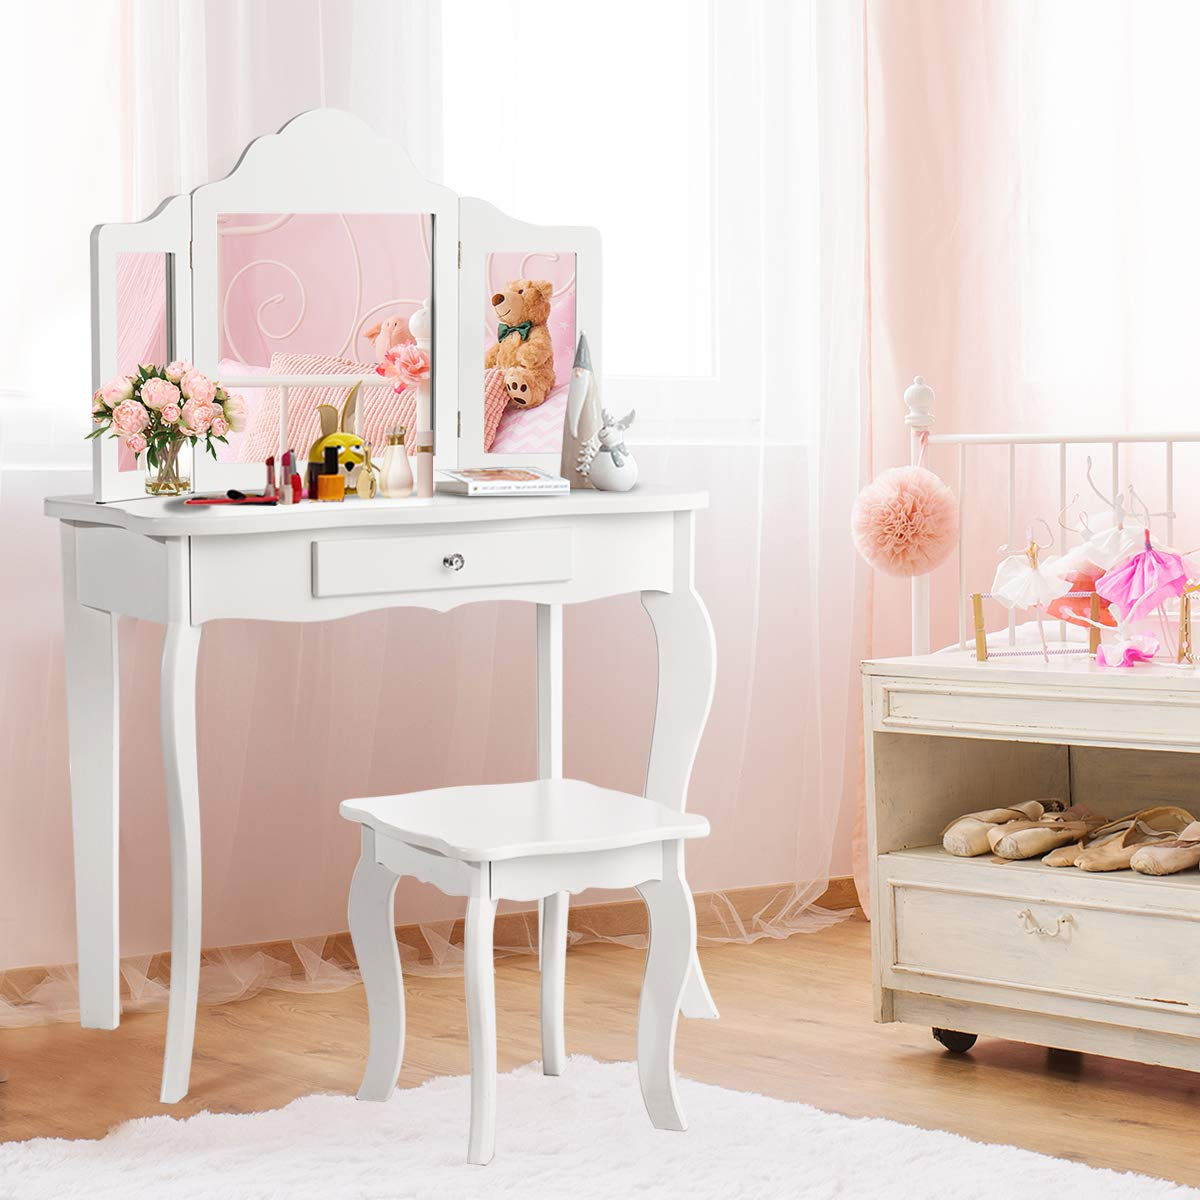 Costzon Kids Wooden Vanity Table & Stool Set, 2 in 1 Detachable Design with Dressing Dable and Writing Desk, Princess Makeup Dressing Table with Two 180° Folding Mirror, for Girls, Kids, White (42 IN) by Costzon